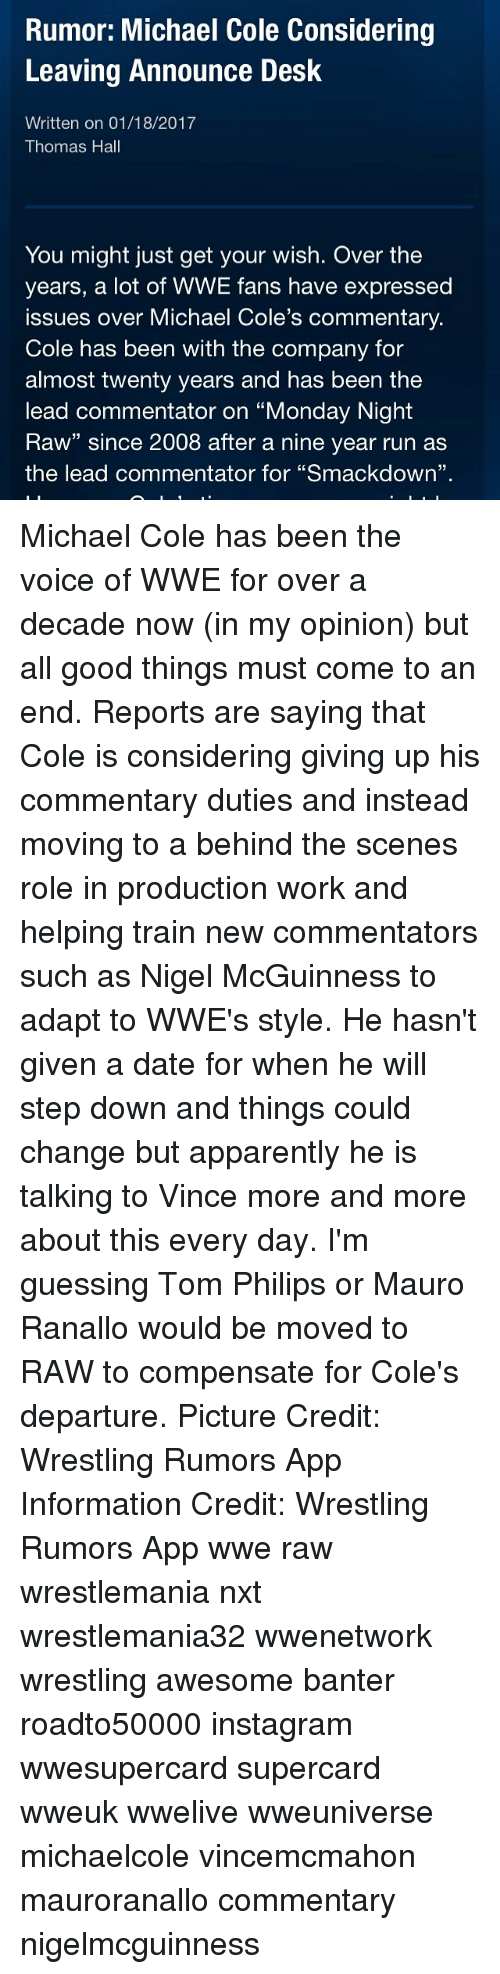 """michael cole: Rumor: Michael Cole Considering  Leaving Announce Desk  Written on 01/18/2017  Thomas Hall  You might just get your wish. Over the  years, a lot of WWE fans have expressed  issues over Michael Cole's commentary  Cole has been with the company for  almost twenty years and has been the  lead commentator on """"Monday Night  Raw"""" since 2008 after a nine year run as  the lead commentator for """"Smackdown"""". Michael Cole has been the voice of WWE for over a decade now (in my opinion) but all good things must come to an end. Reports are saying that Cole is considering giving up his commentary duties and instead moving to a behind the scenes role in production work and helping train new commentators such as Nigel McGuinness to adapt to WWE's style. He hasn't given a date for when he will step down and things could change but apparently he is talking to Vince more and more about this every day. I'm guessing Tom Philips or Mauro Ranallo would be moved to RAW to compensate for Cole's departure. Picture Credit: Wrestling Rumors App Information Credit: Wrestling Rumors App wwe raw wrestlemania nxt wrestlemania32 wwenetwork wrestling awesome banter roadto50000 instagram wwesupercard supercard wweuk wwelive wweuniverse michaelcole vincemcmahon mauroranallo commentary nigelmcguinness"""